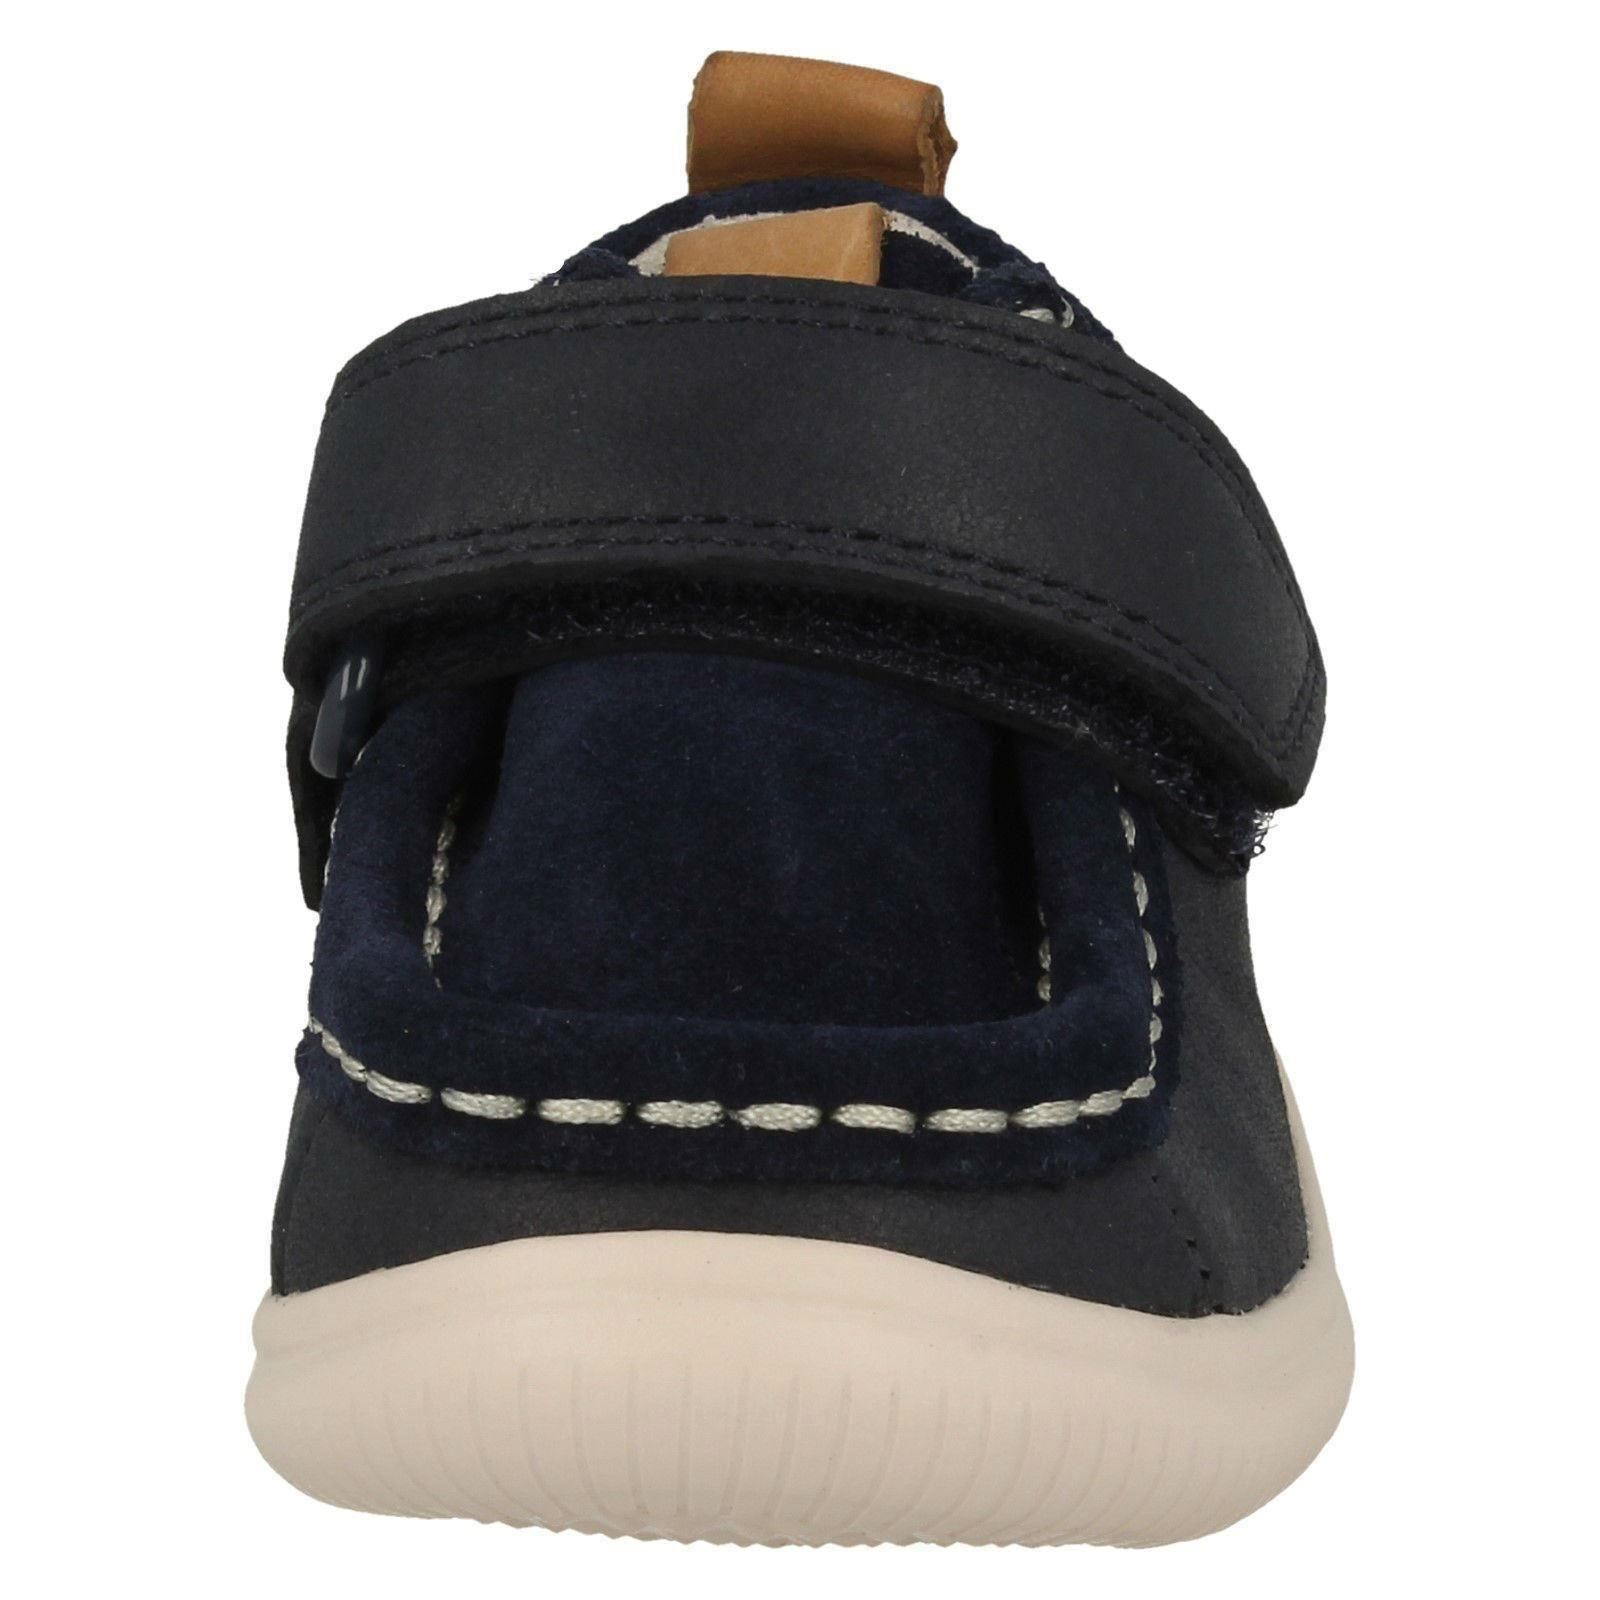 /'Cloud Sea/' Boys Clarks Casual Hook and Loop Fastening Leather Shoes